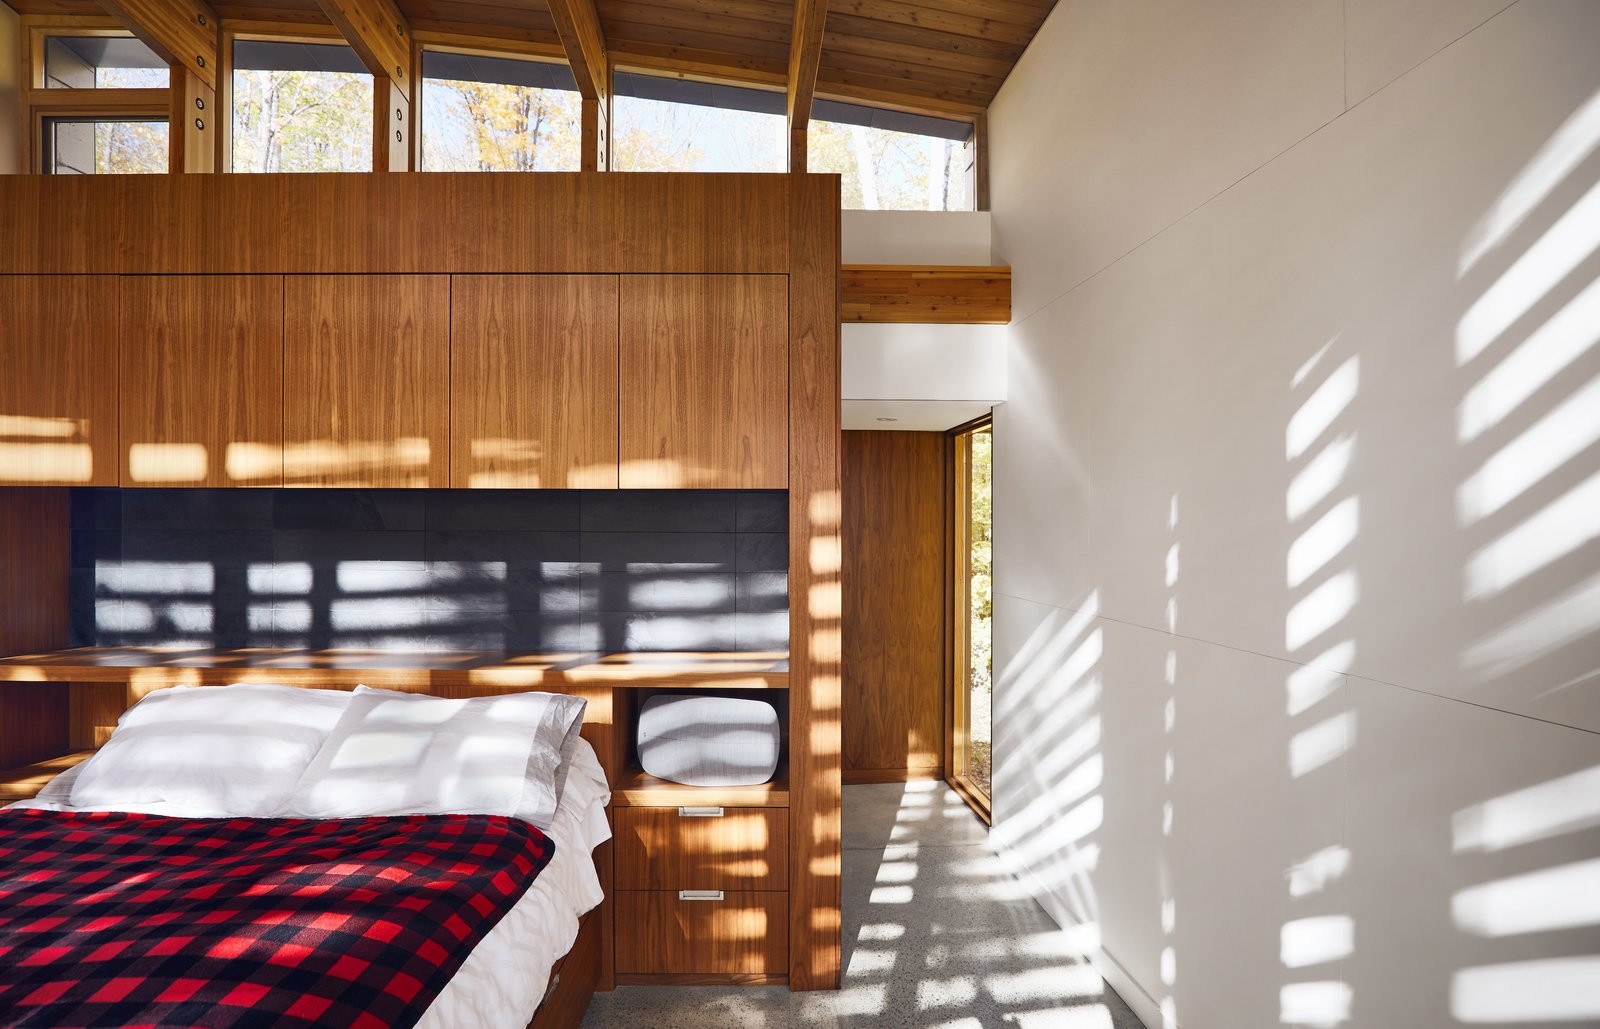 Bedroom, Storage, Bed, and Terrazzo Walnut ply millwork by Ashley Woodturning and polished concrete floors with radiant heating appear throughout the residence.  Best Bedroom Terrazzo Bed Photos from A Curved House in Ontario Bends 100 Degrees For Forest Views